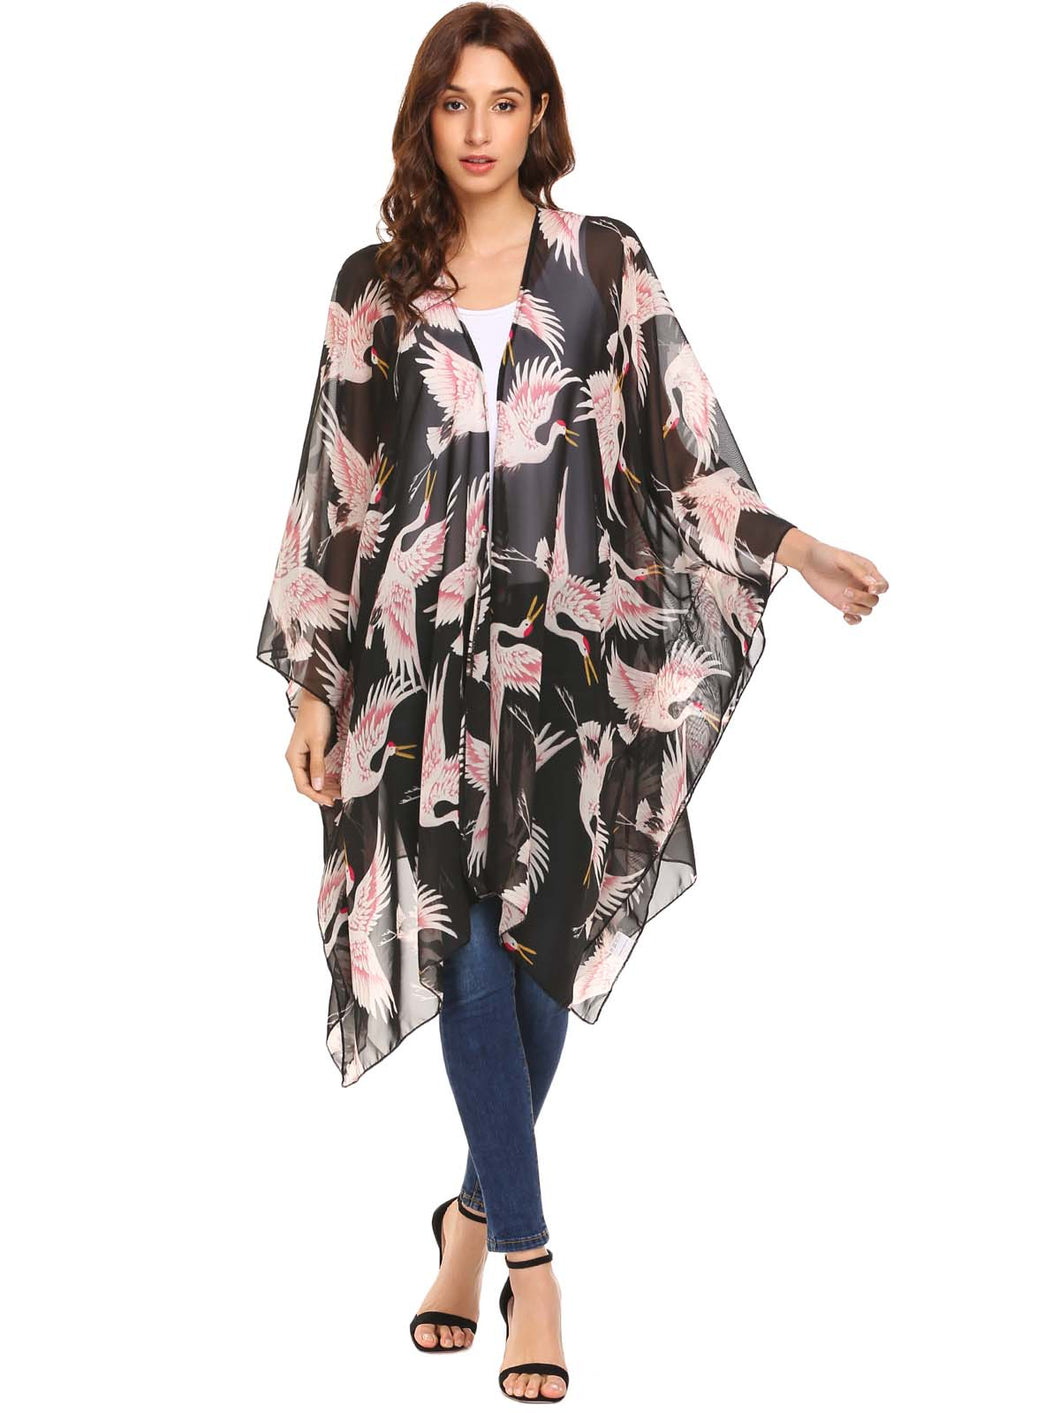 SoTeer Women Loose Bat Sleeve Print Cover Up